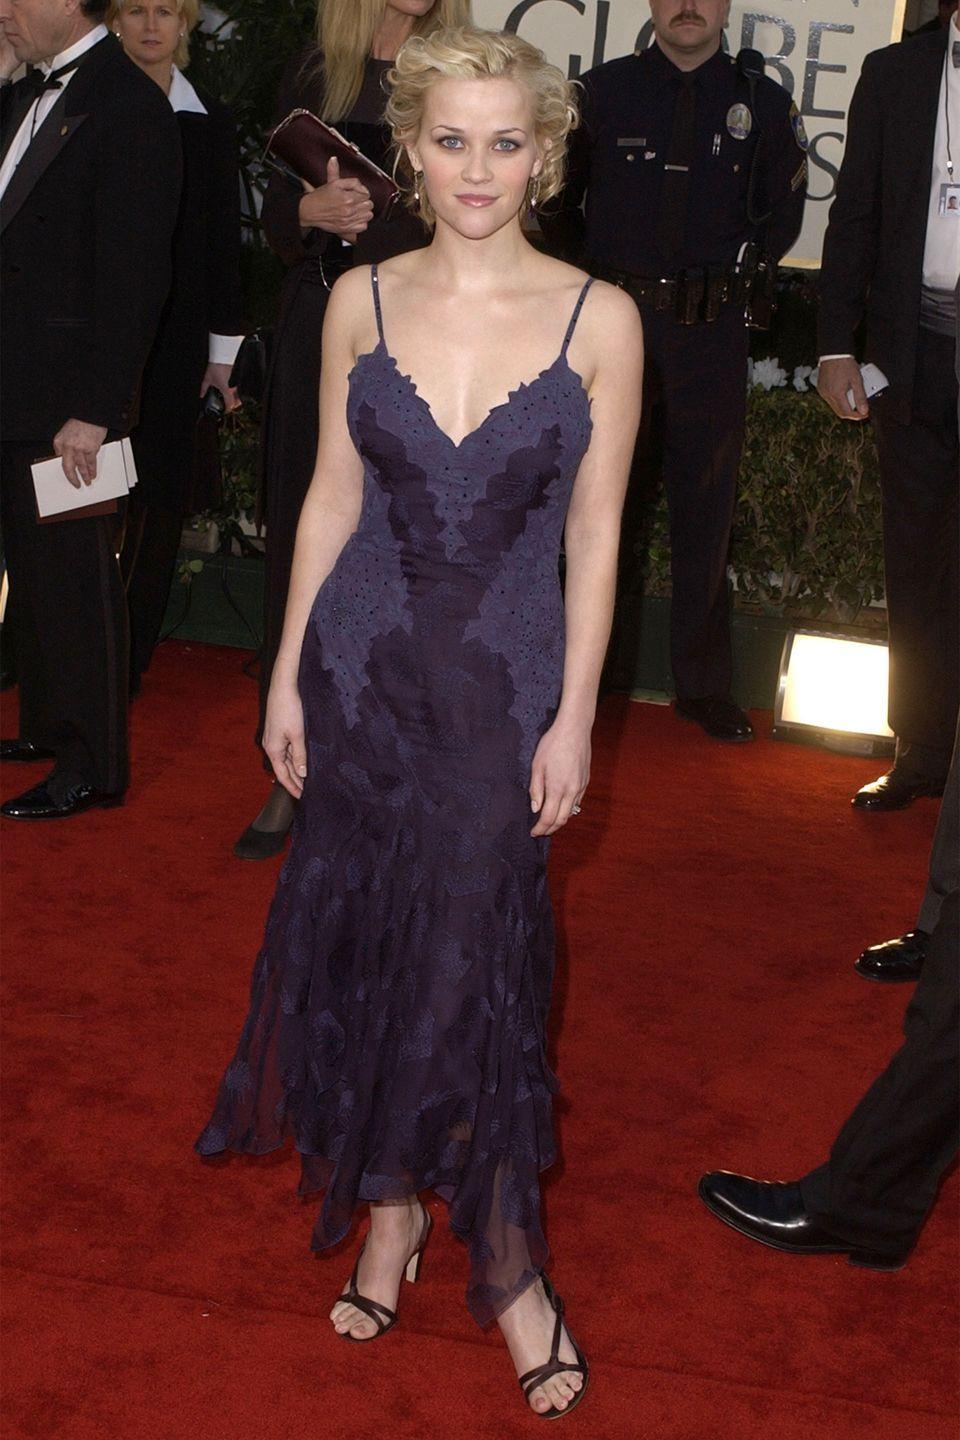 <p>At the Academy Awards, Witherspoon brought an old-Hollywood vibe in an embellished black gown with delicate lace cap sleeves. </p>